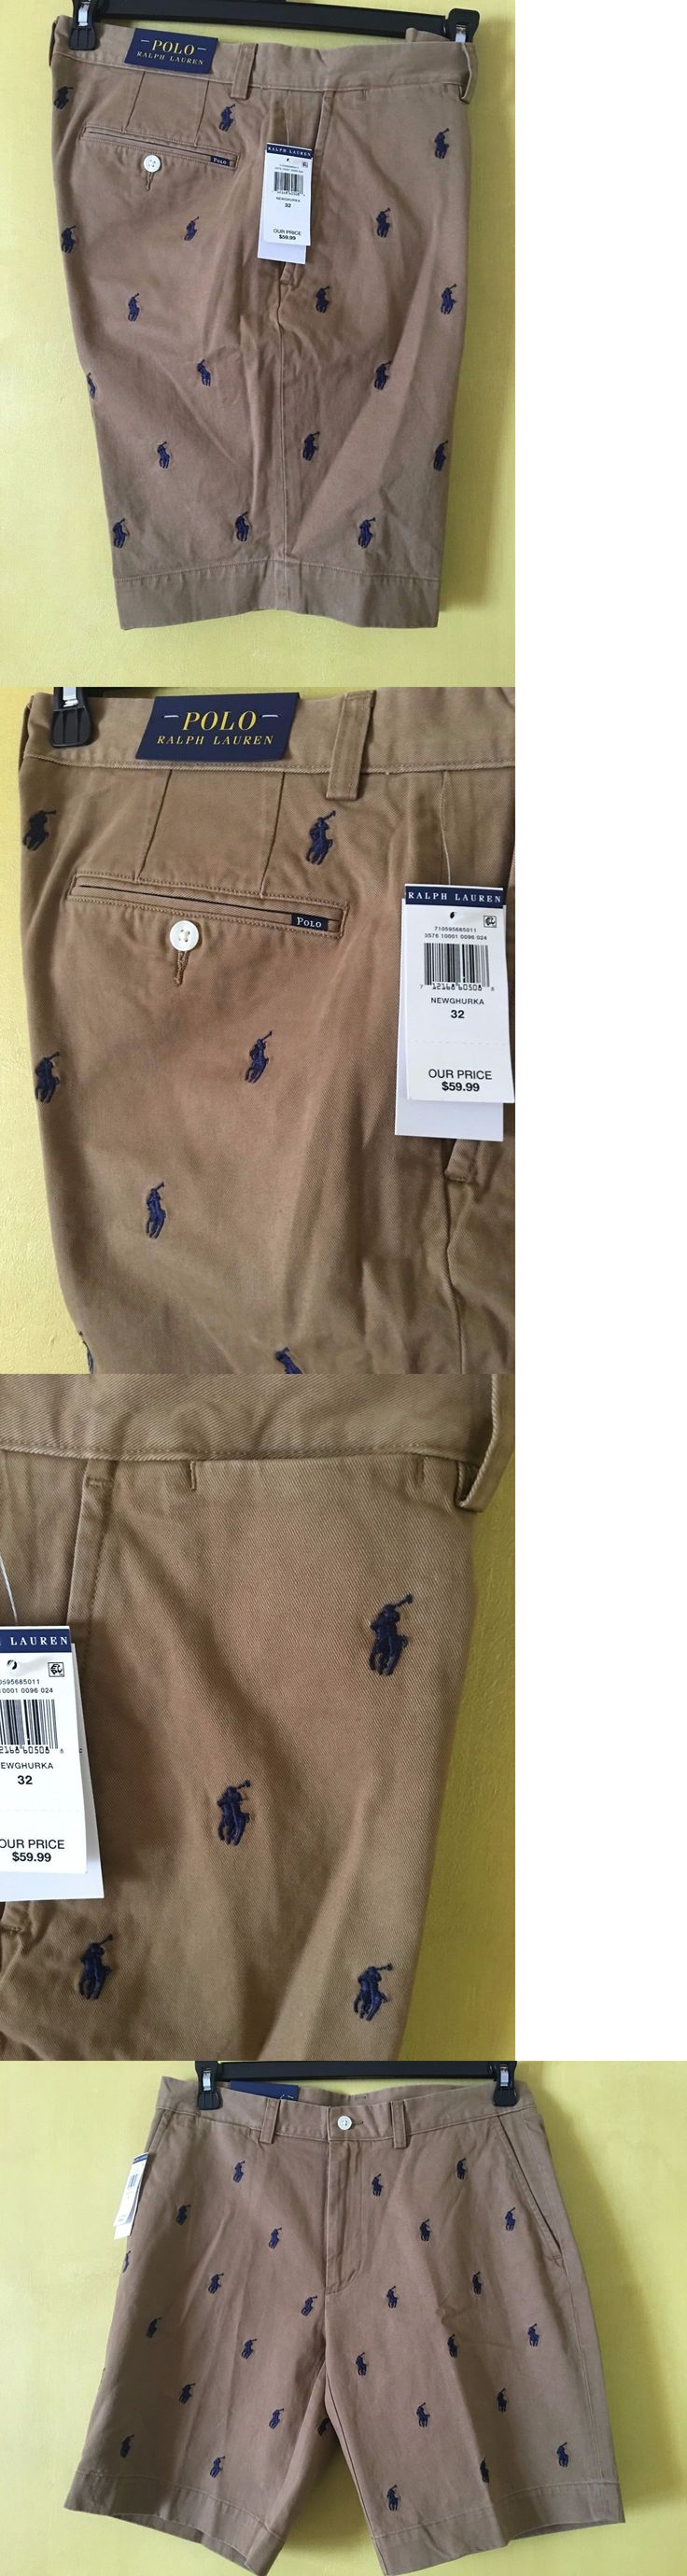 Shorts 15689: New Polo Ralph Lauren Mens Khaki Shorts Ponies All Over 34 36 38 Classic Fit 9 -> BUY IT NOW ONLY: $47.99 on eBay!